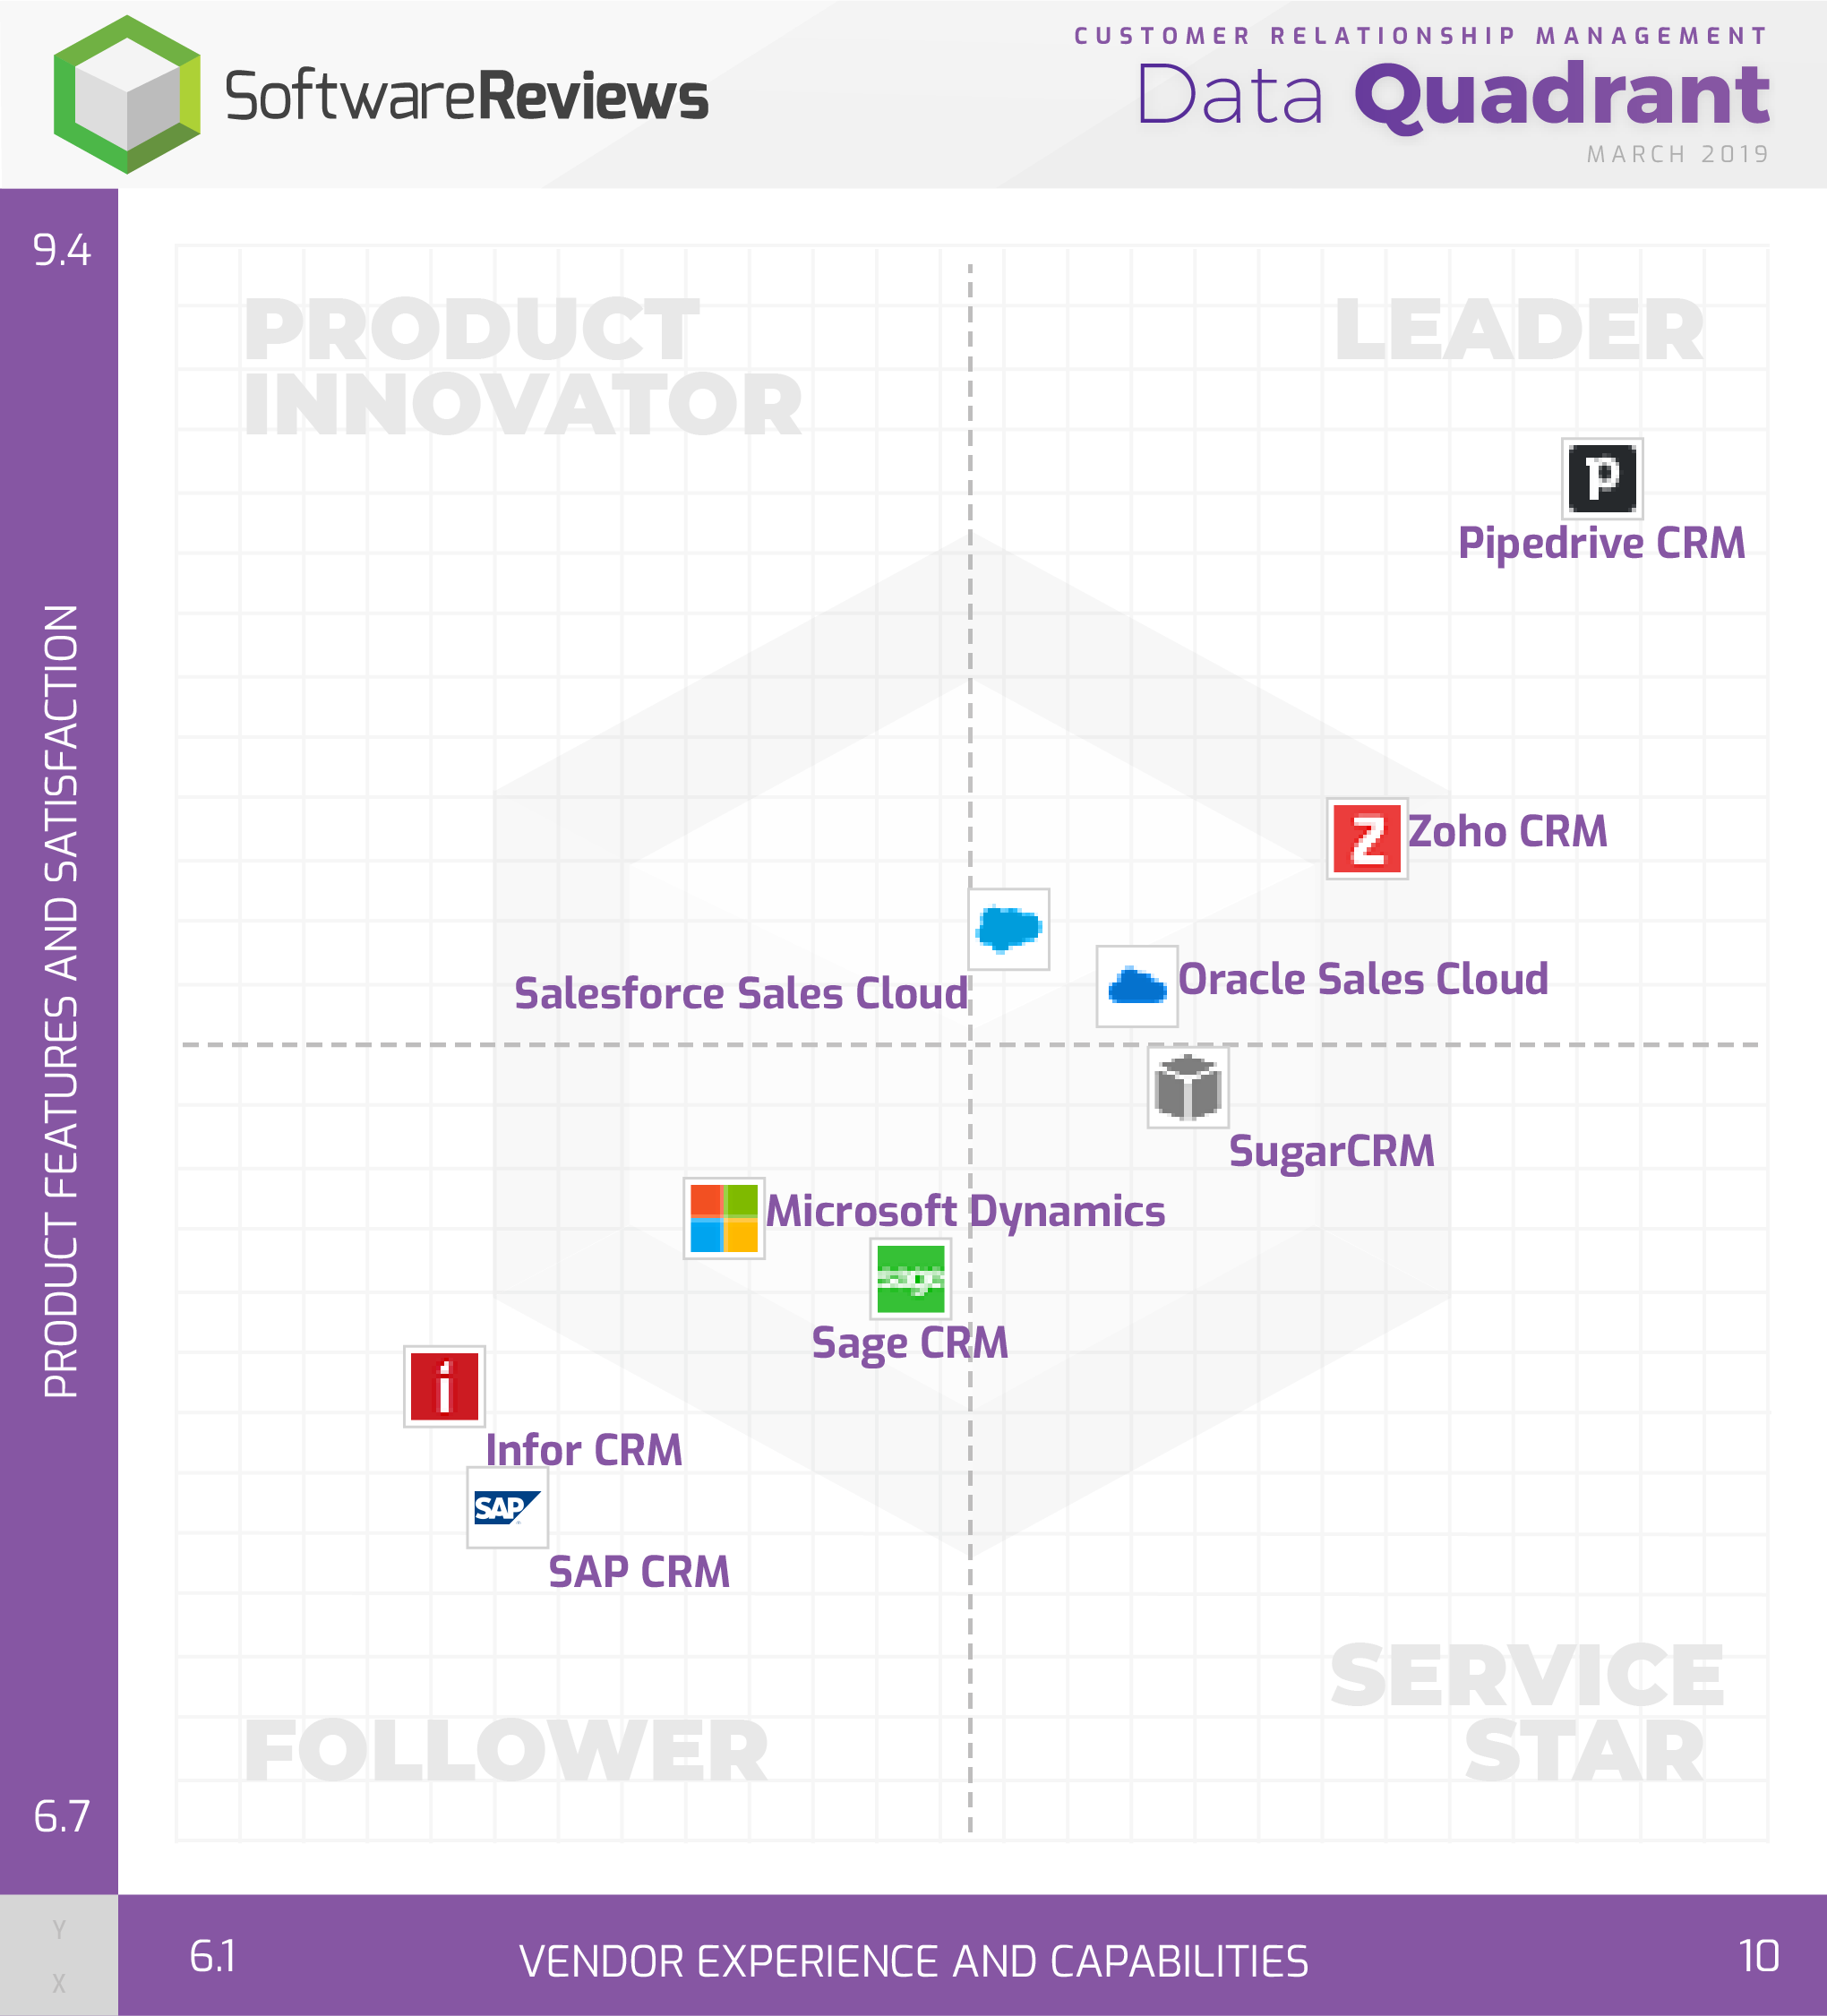 Customer Relationship Management Data Quadrant